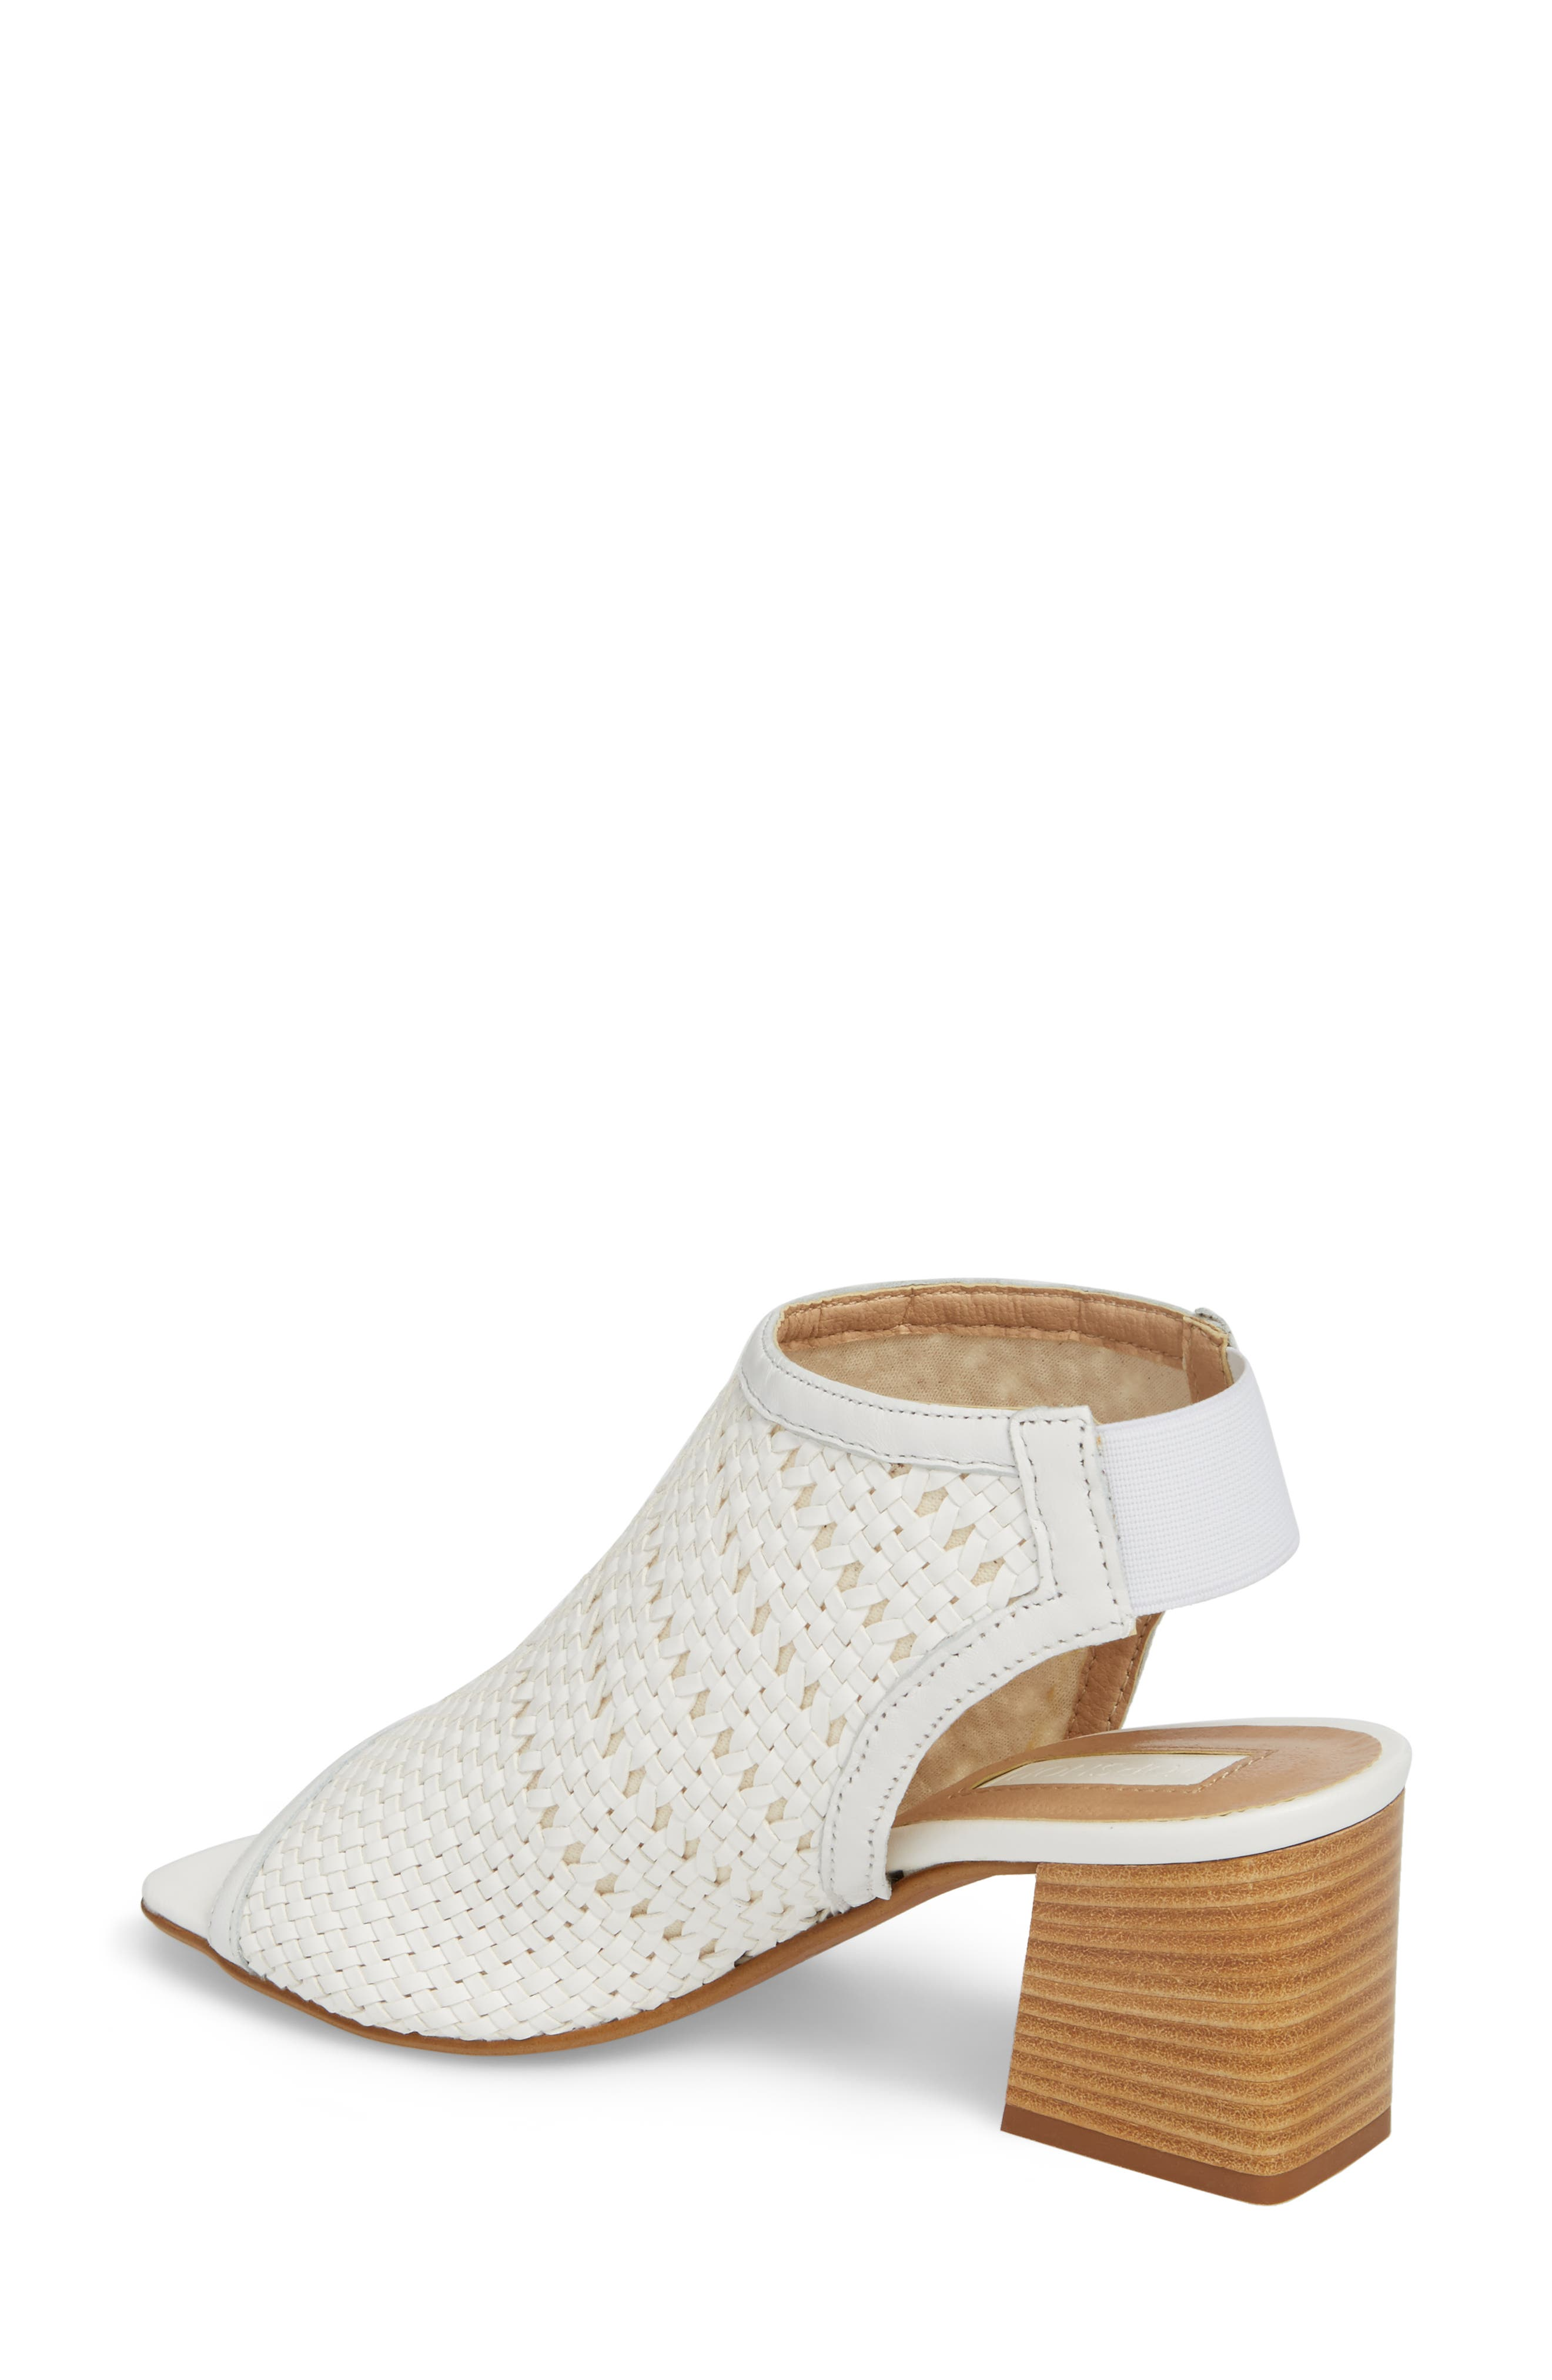 Nifty Woven Flared Heel Sandal,                             Alternate thumbnail 4, color,